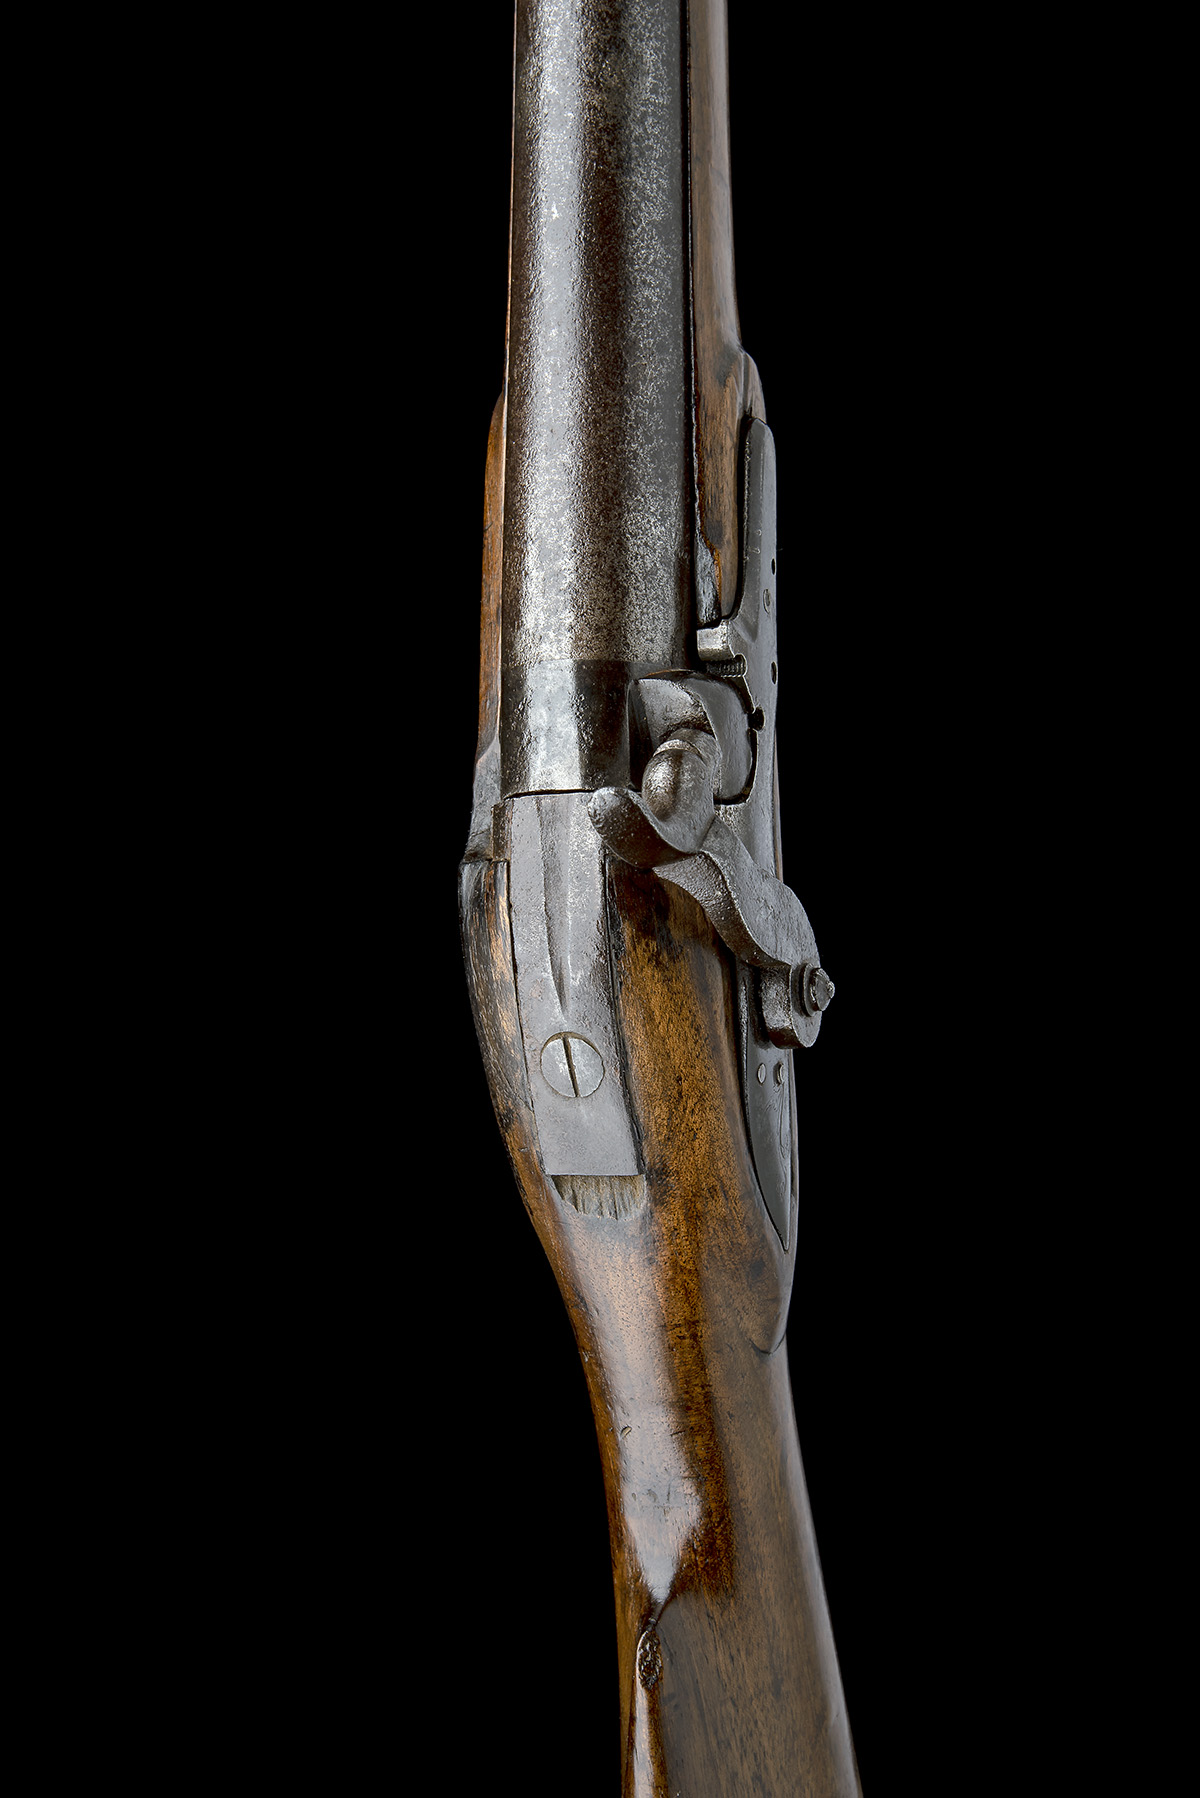 A 10-BORE PERCUSSION BANK-GUN, SIGNATURE OBSCURED, no visible serial number, English, some parts - Image 6 of 7